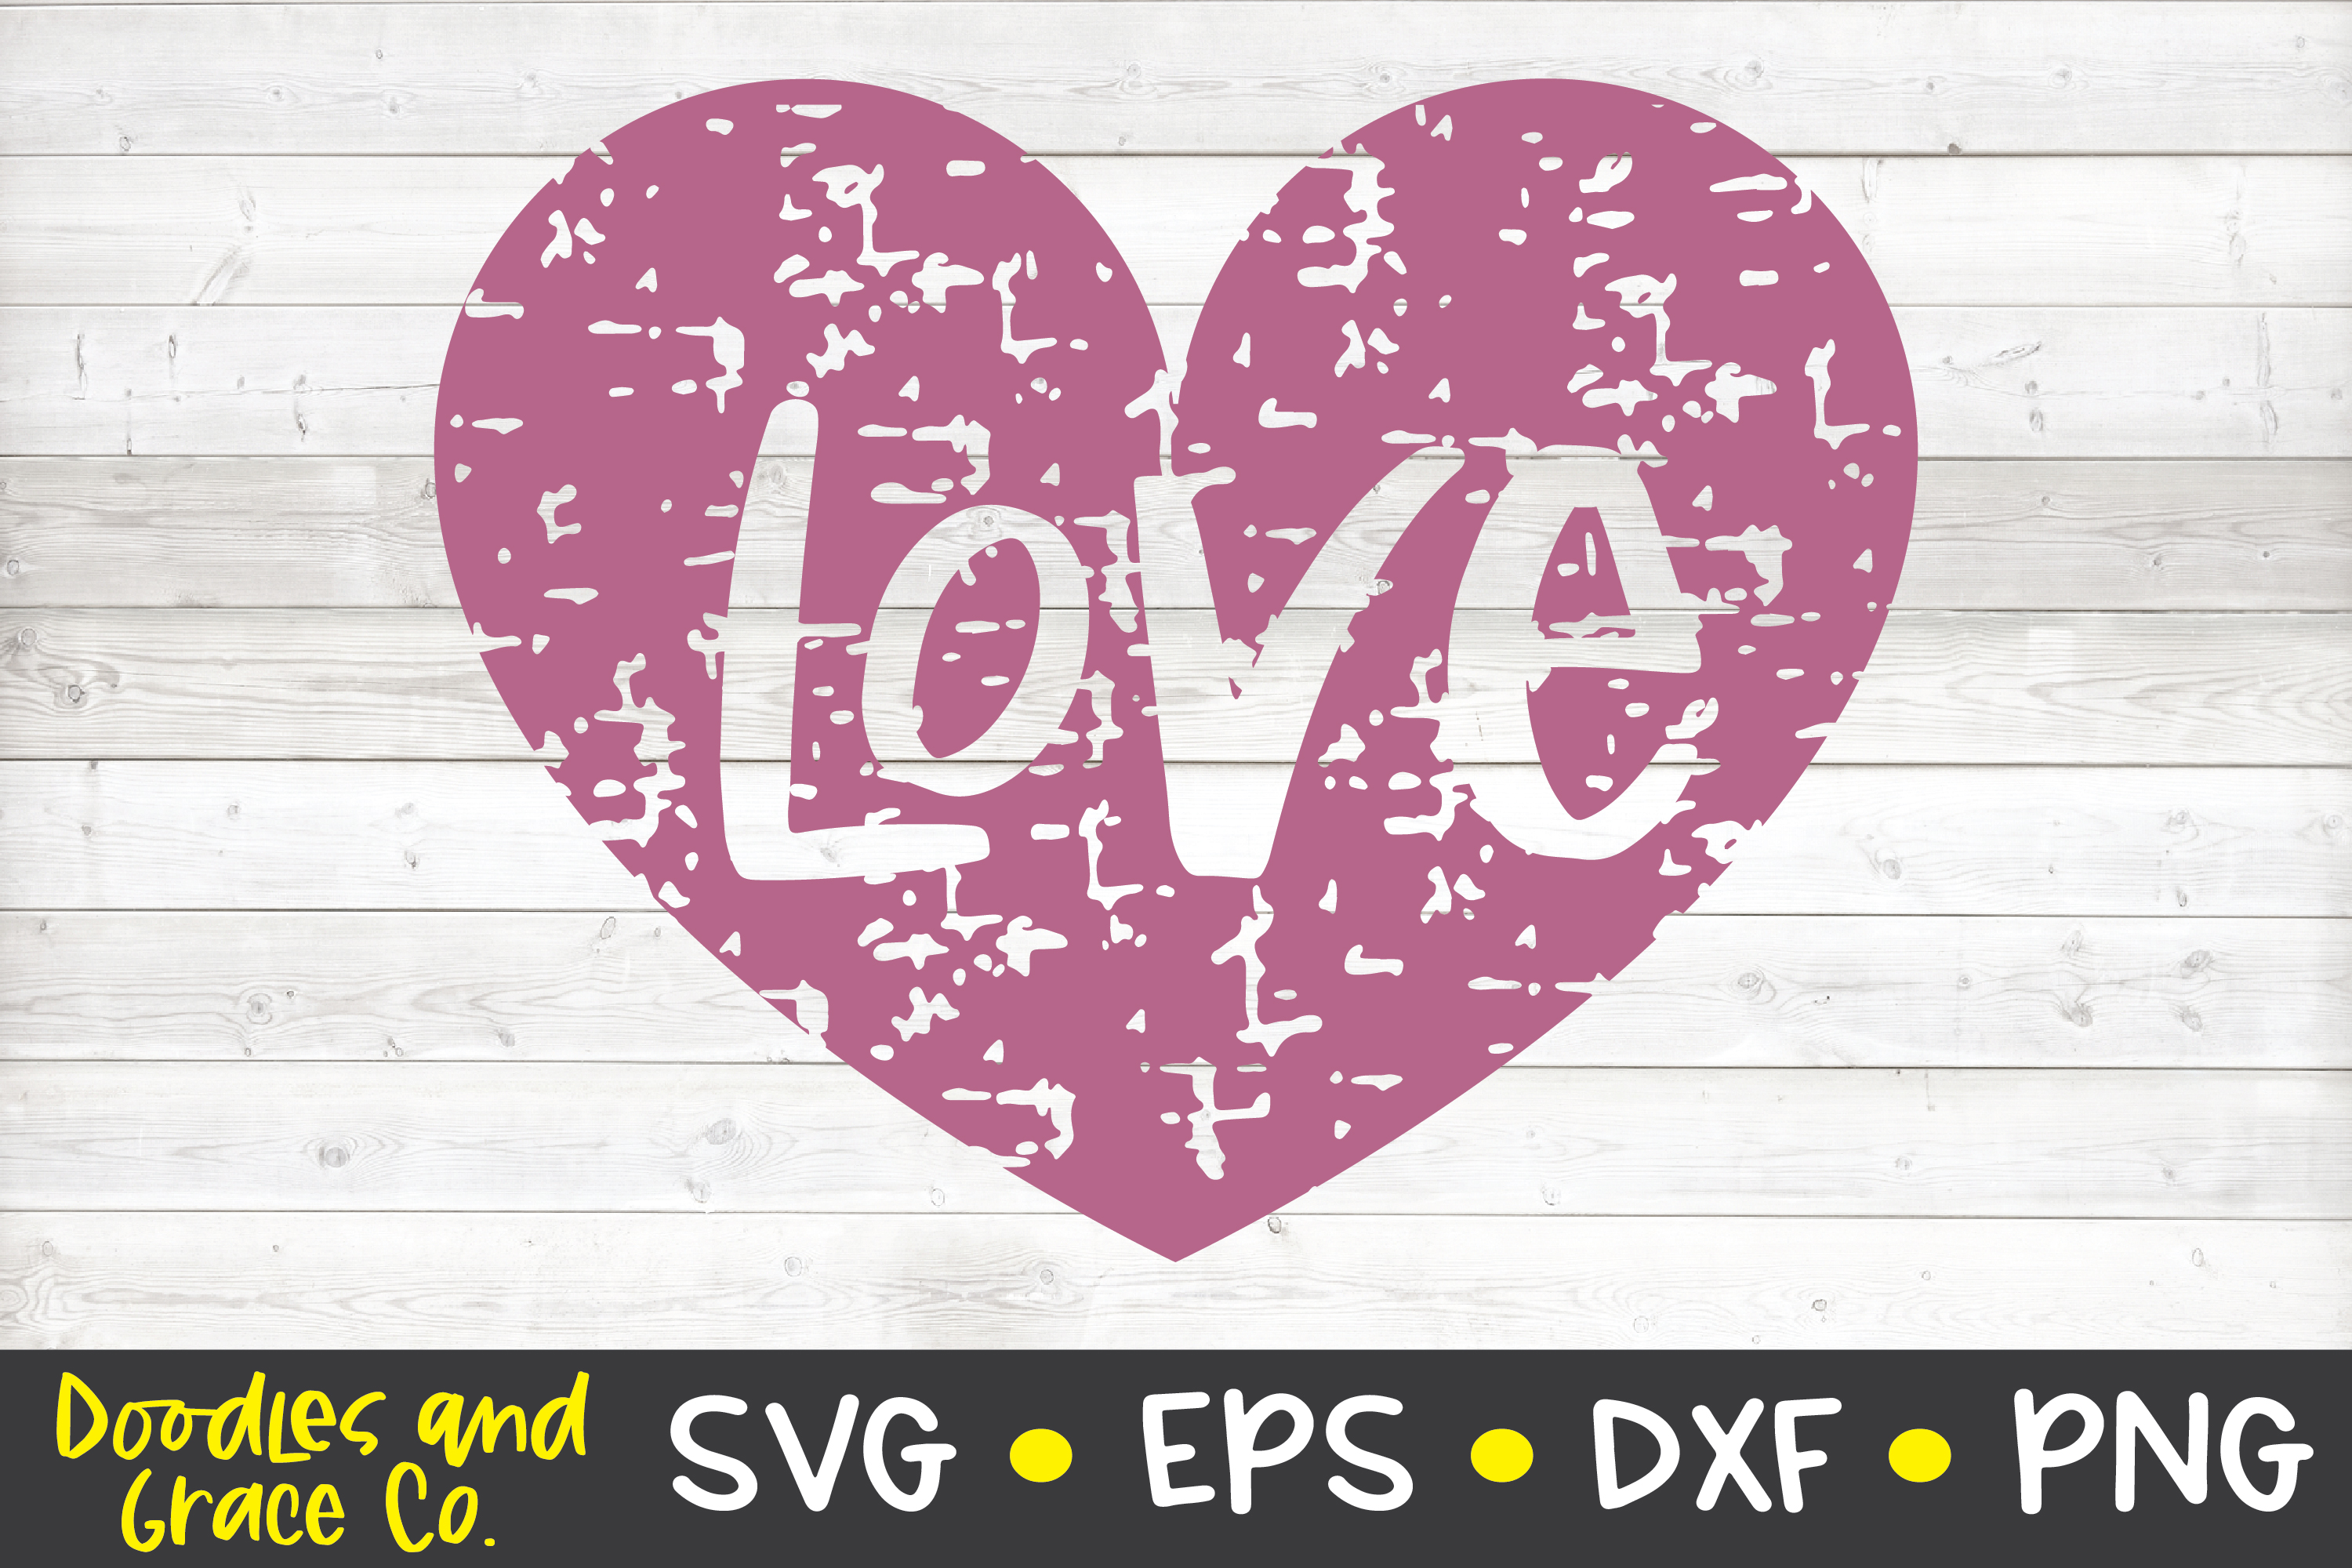 Grunge Love Heart SVG - DXF - EPS - PNG example image 2